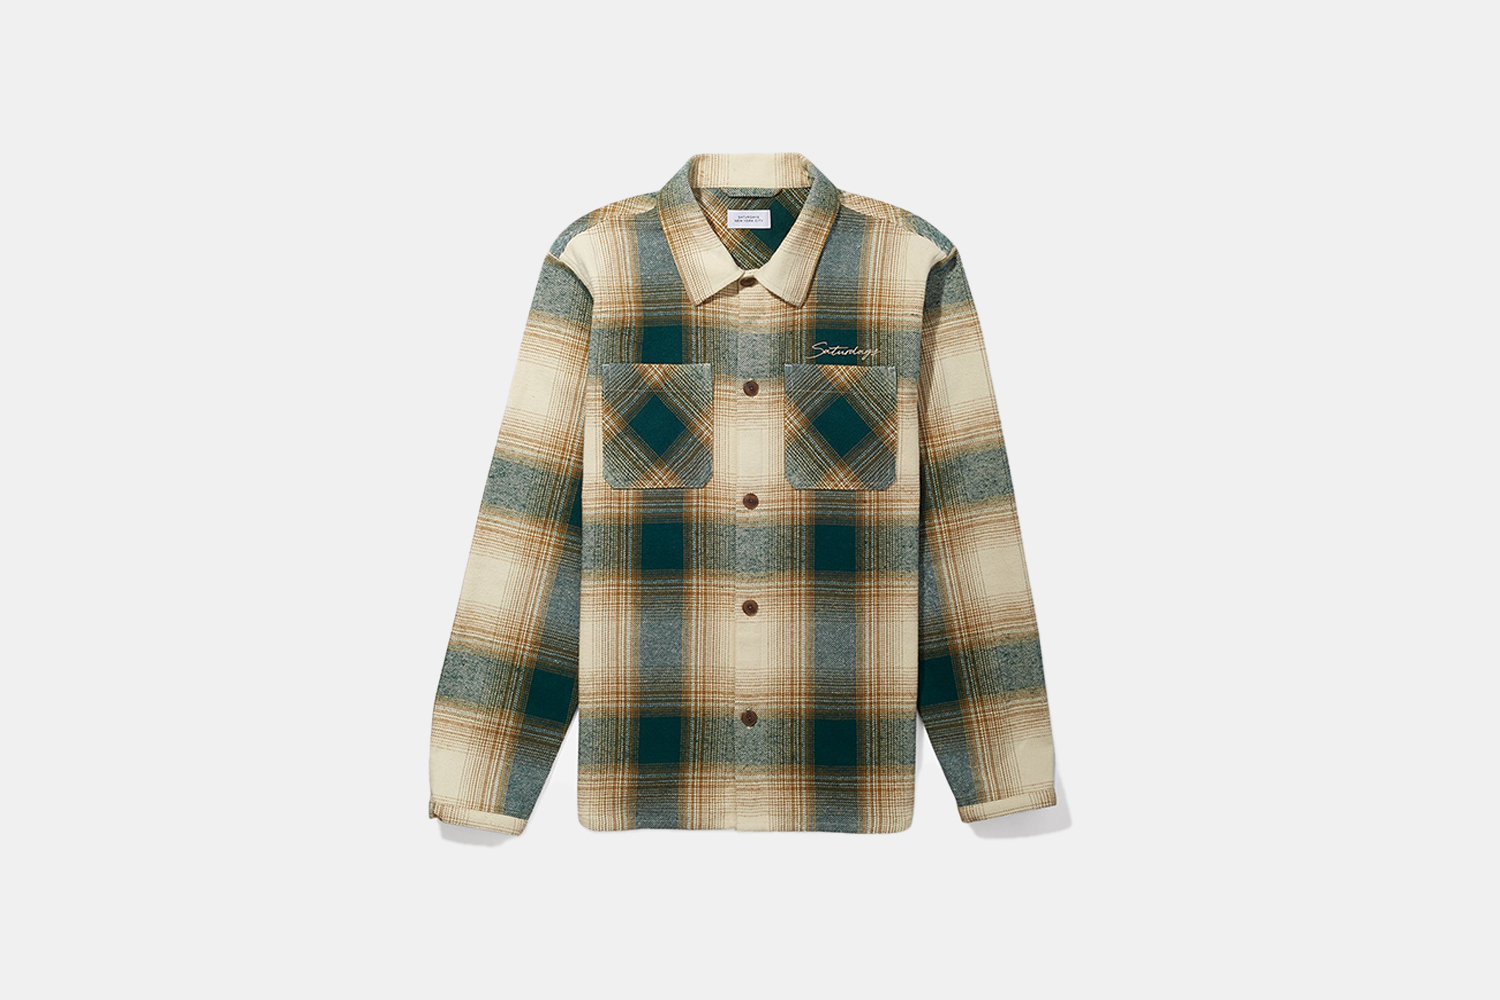 a flannel.